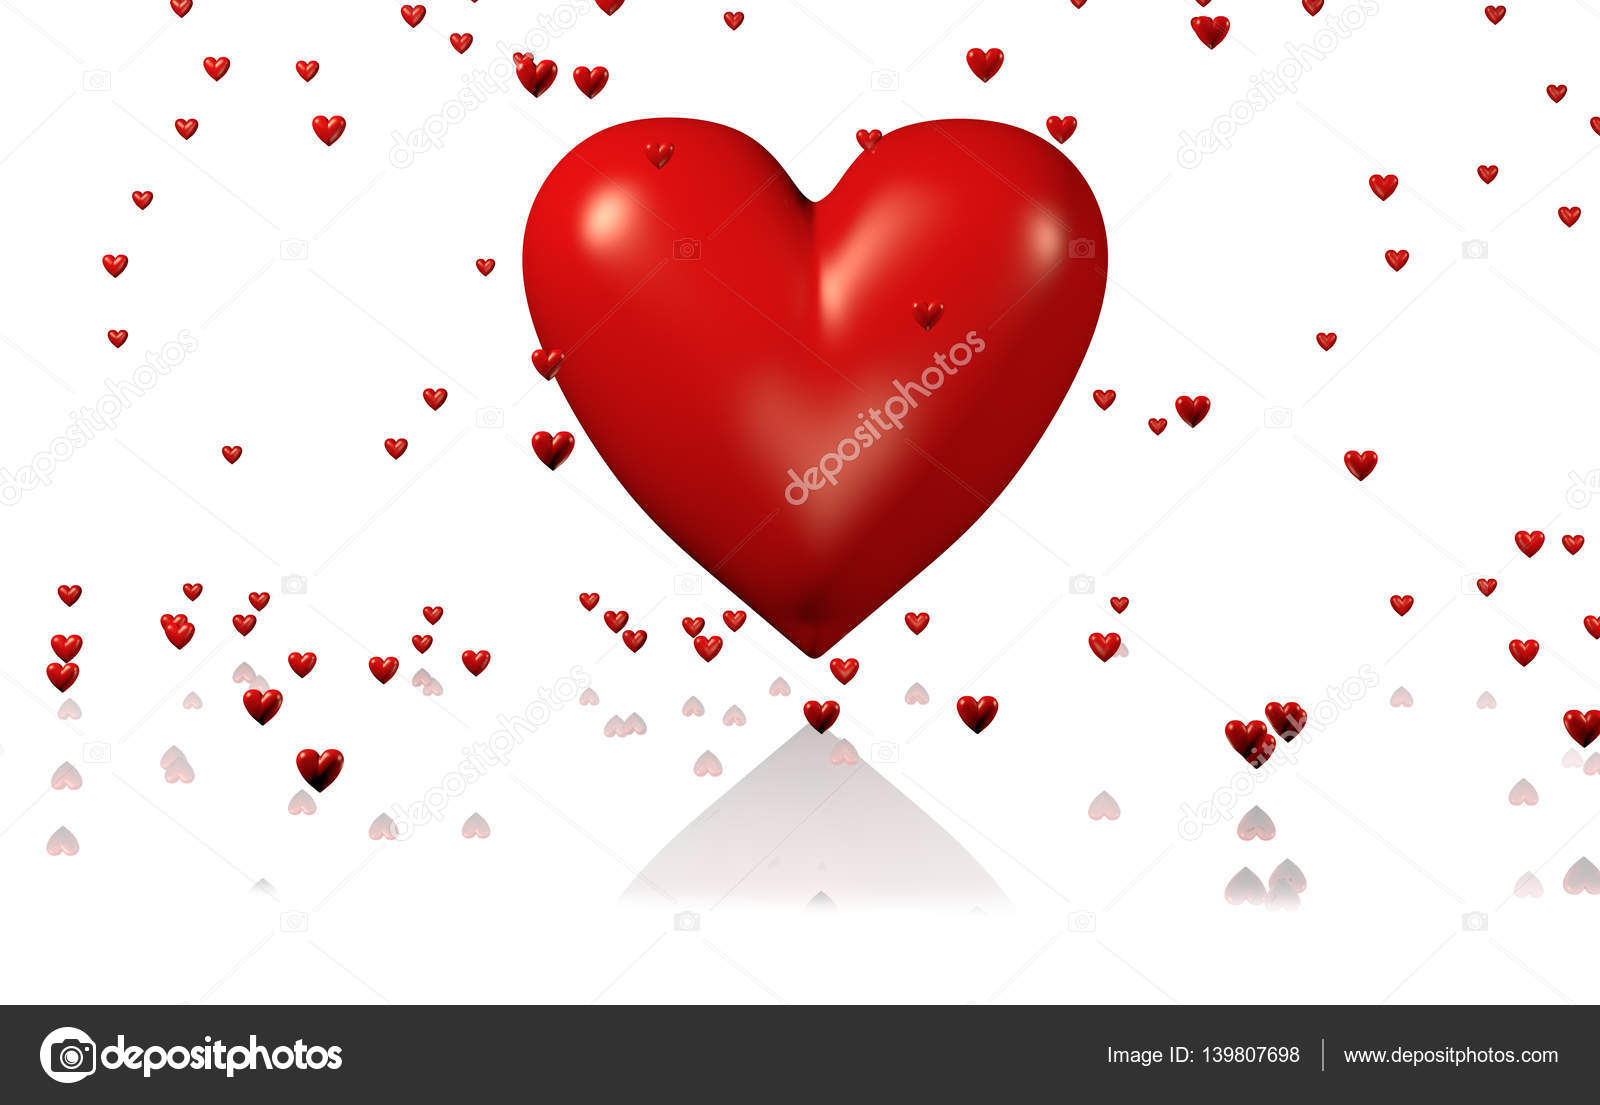 One Big And Red Heart With Lots Of Tiny Hearts Stock Photo C Shkyo30 139807698